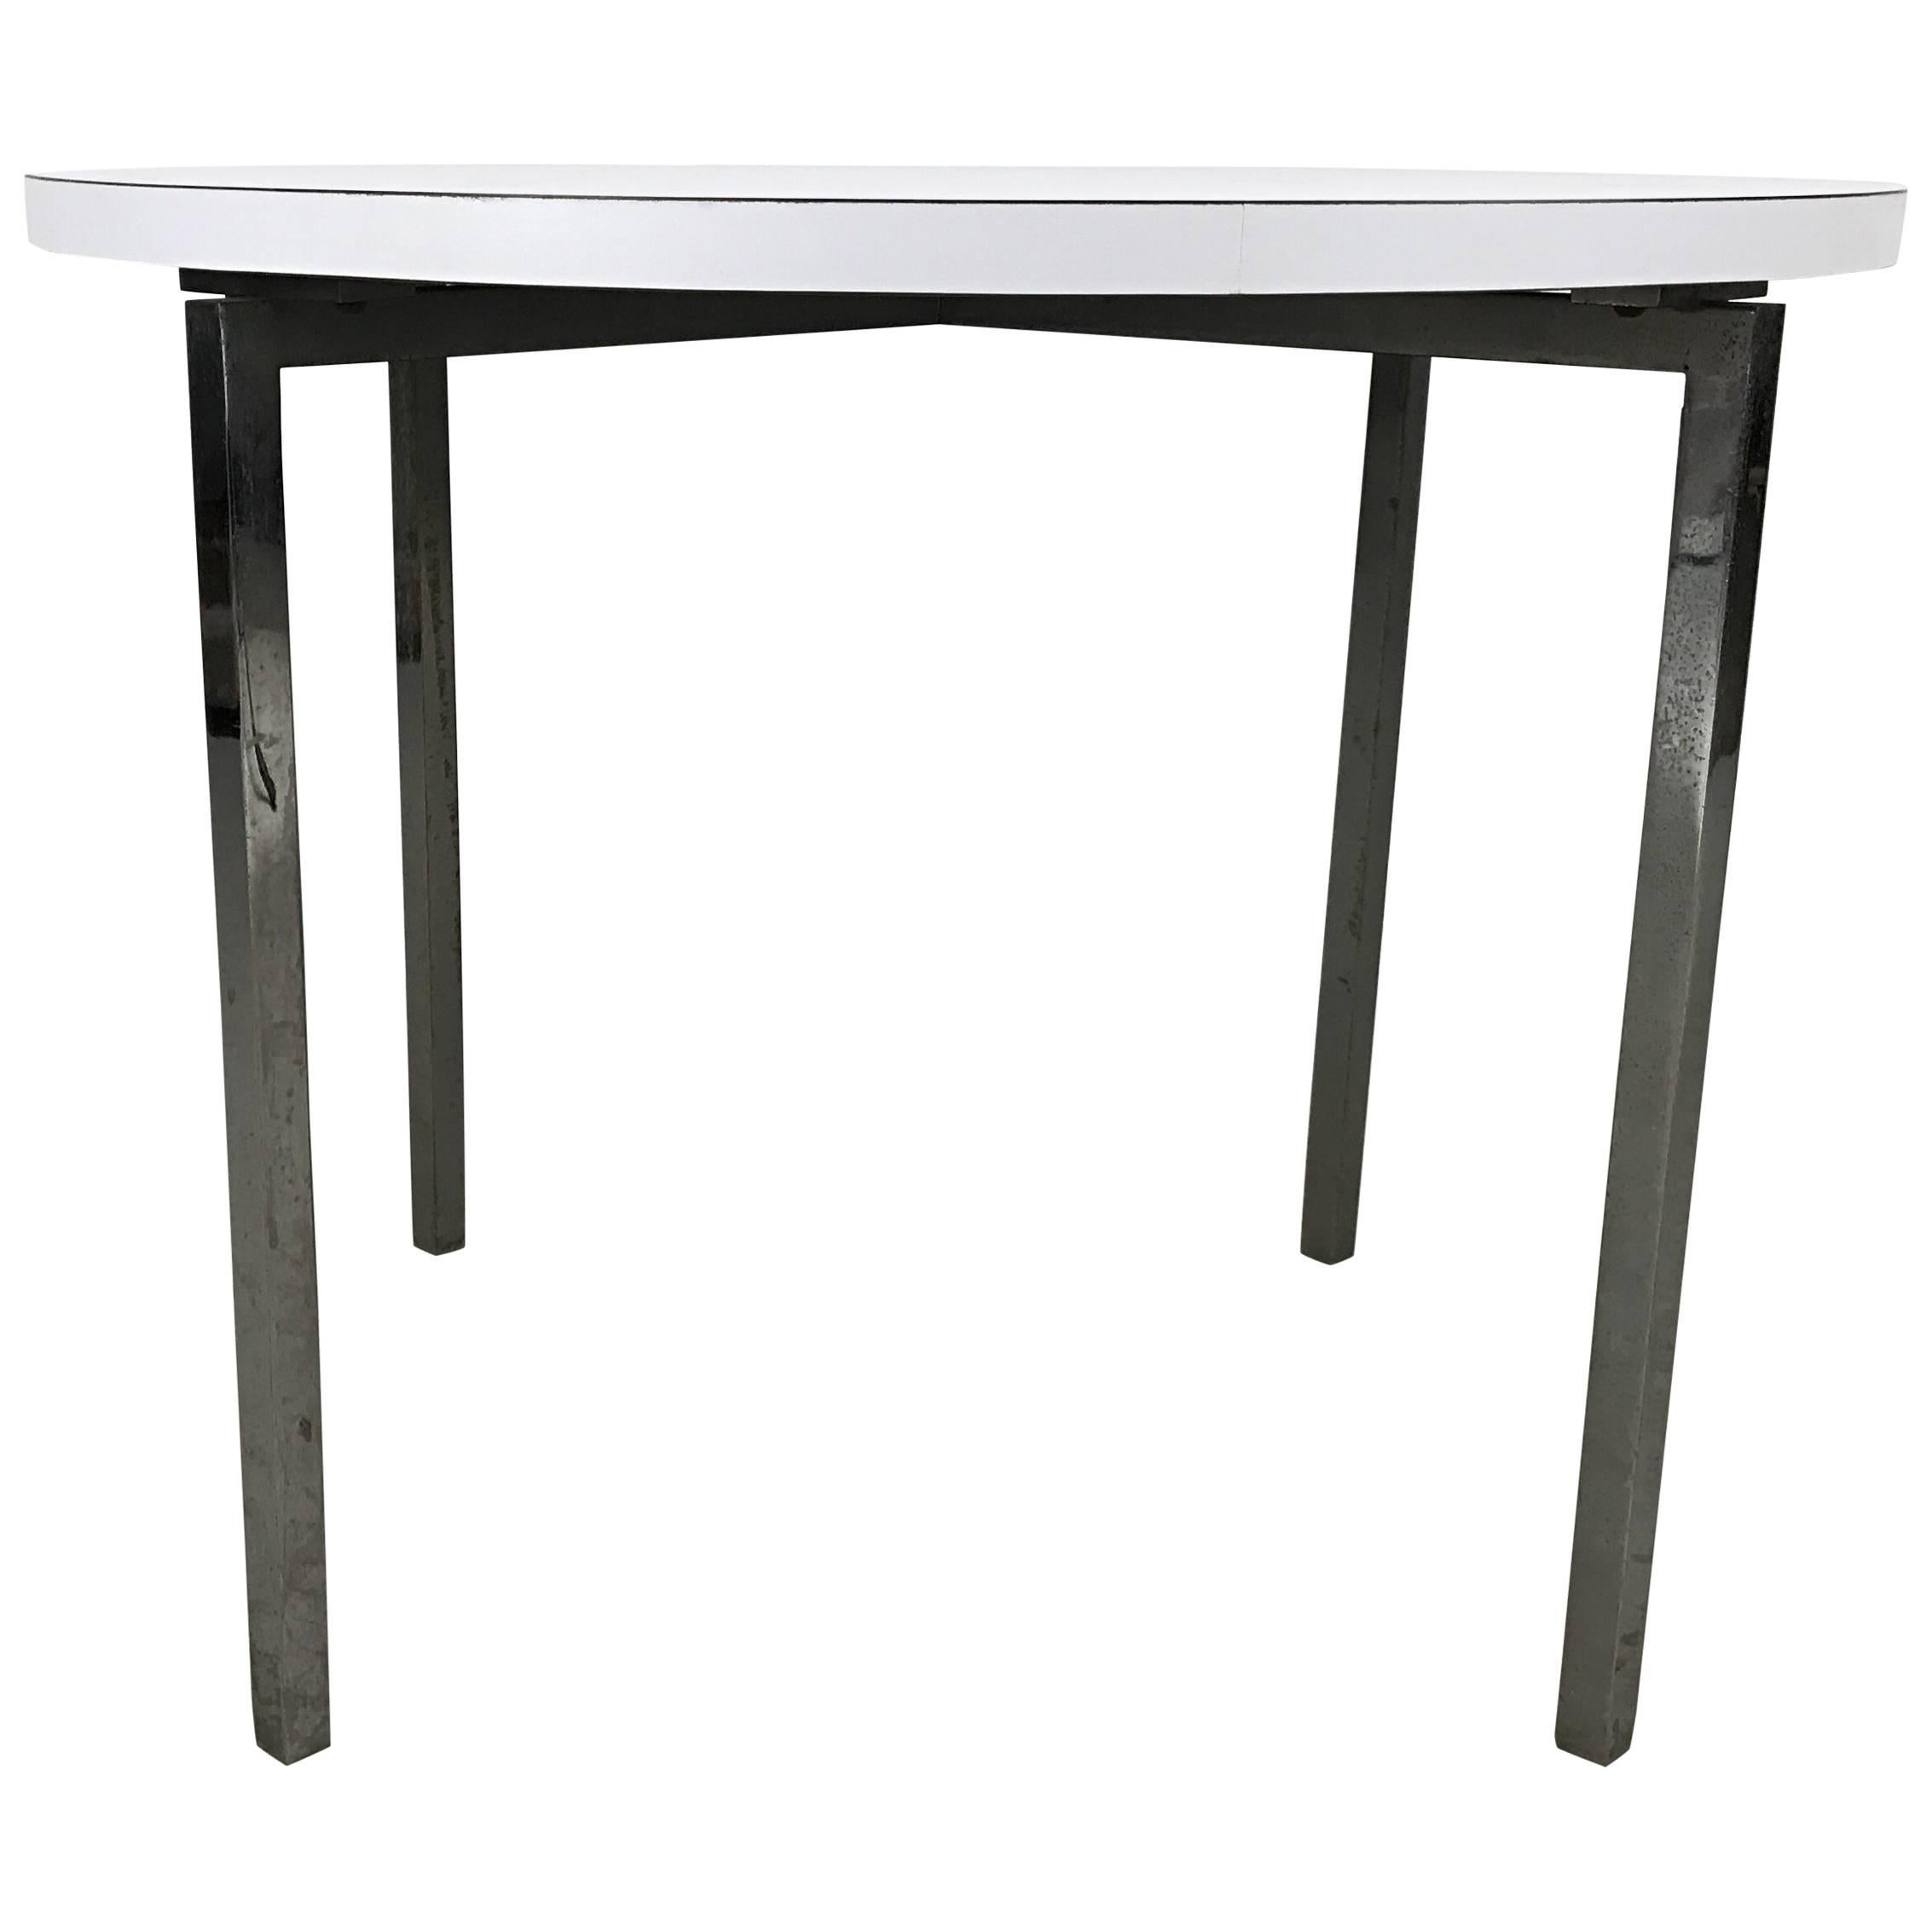 Early Production Florence Knoll End or Occasional Table Knoll, New York